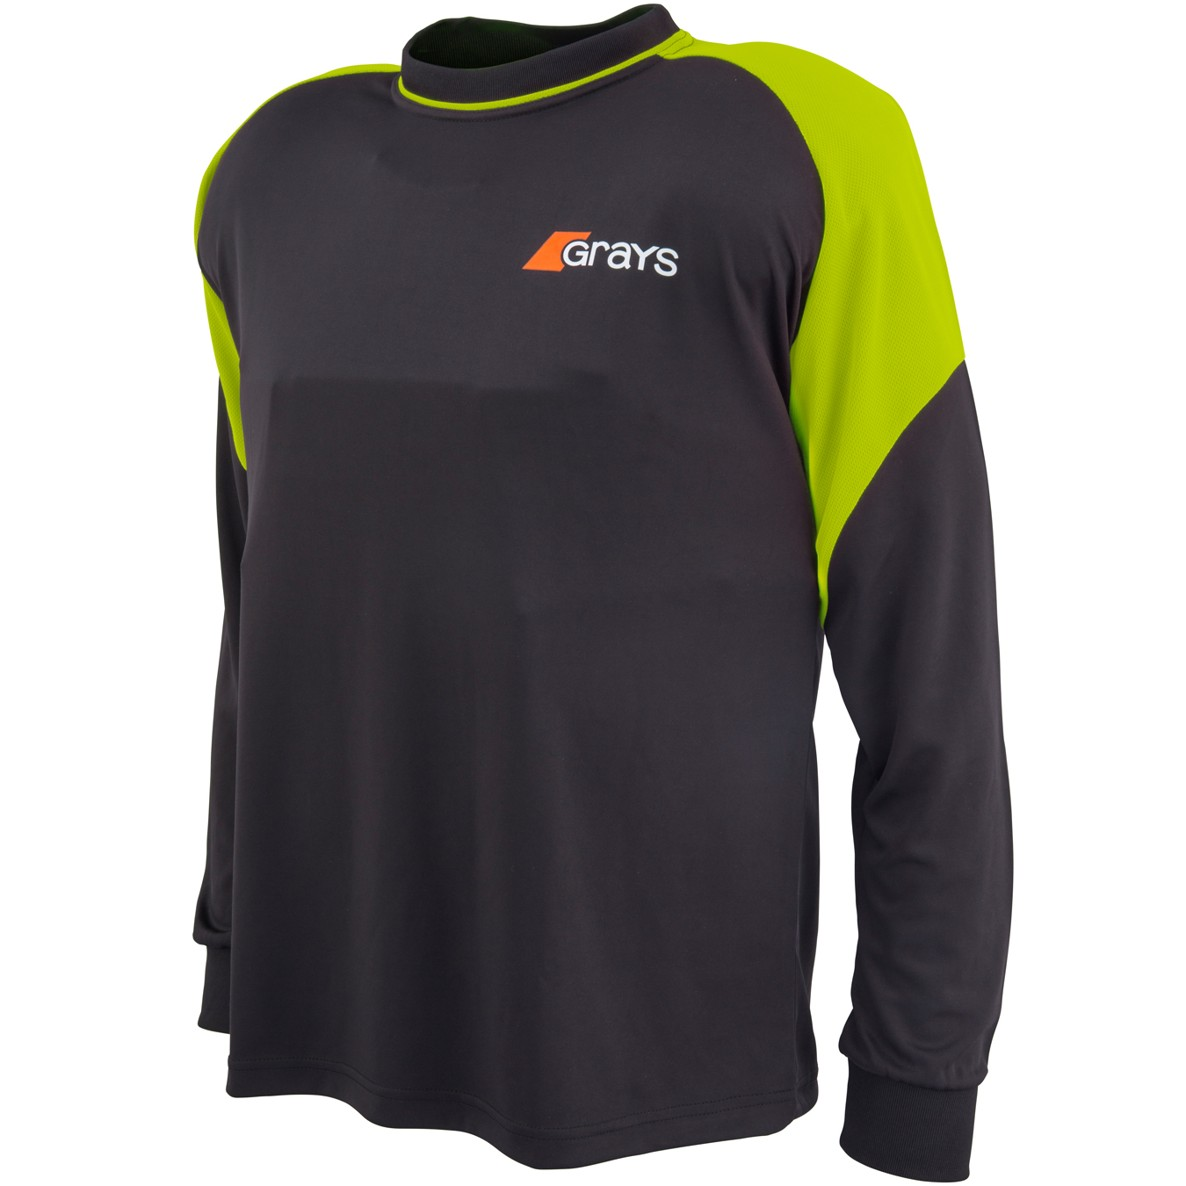 Grays NITRO LONG SLEEVE SMOCK - M